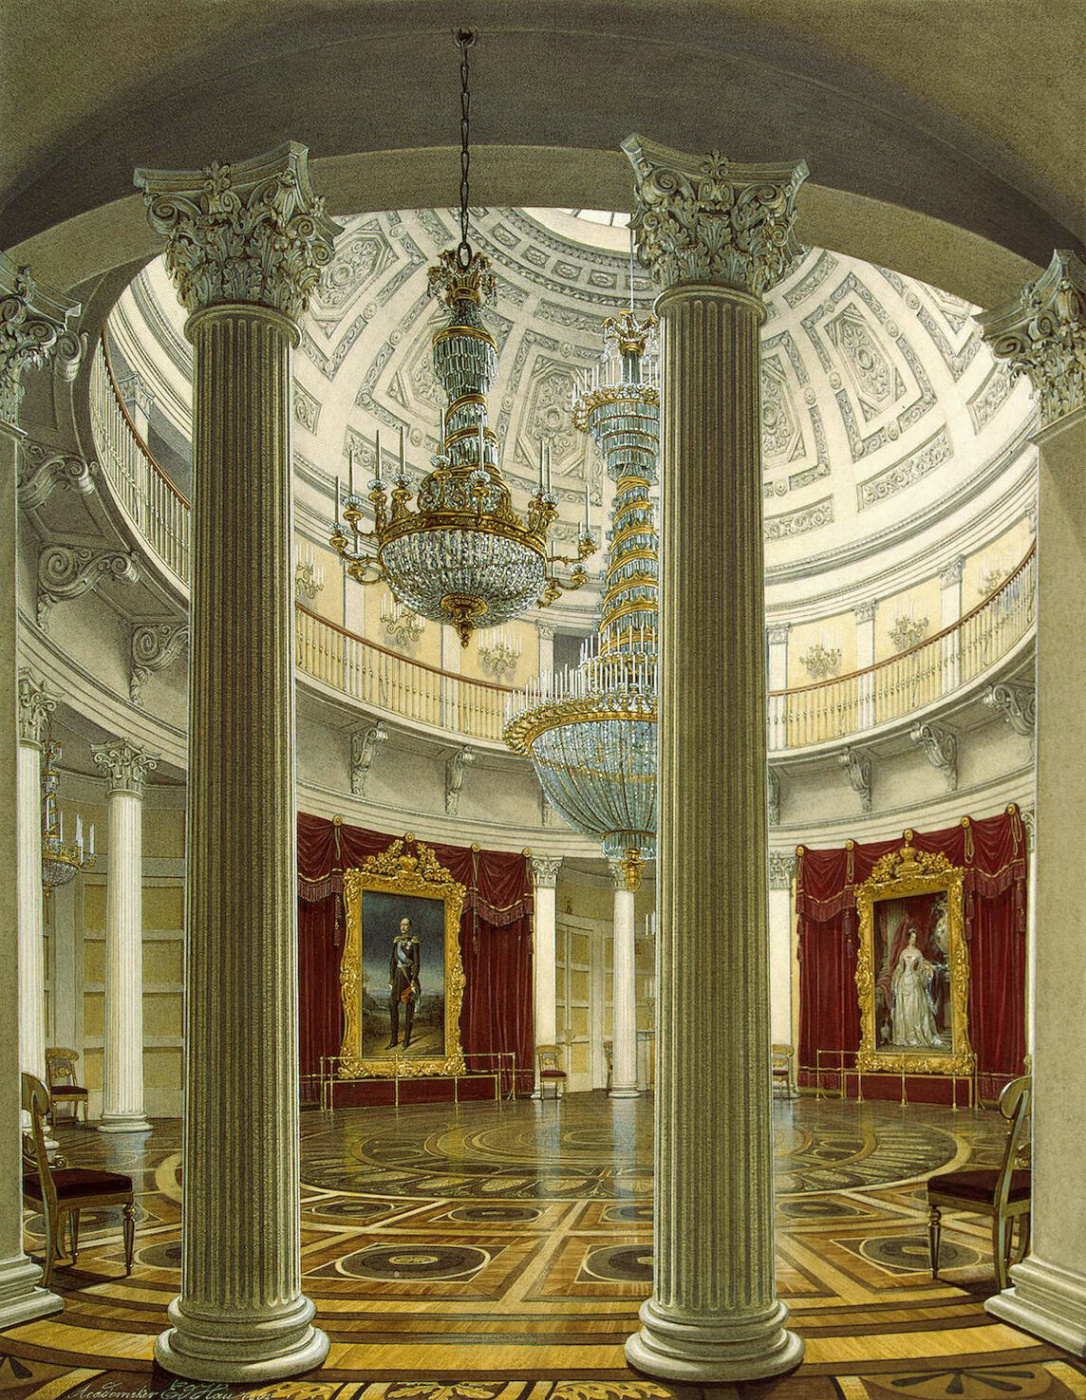 View of the Rotunda in the Winter Palace by Edward Petrovich Hau